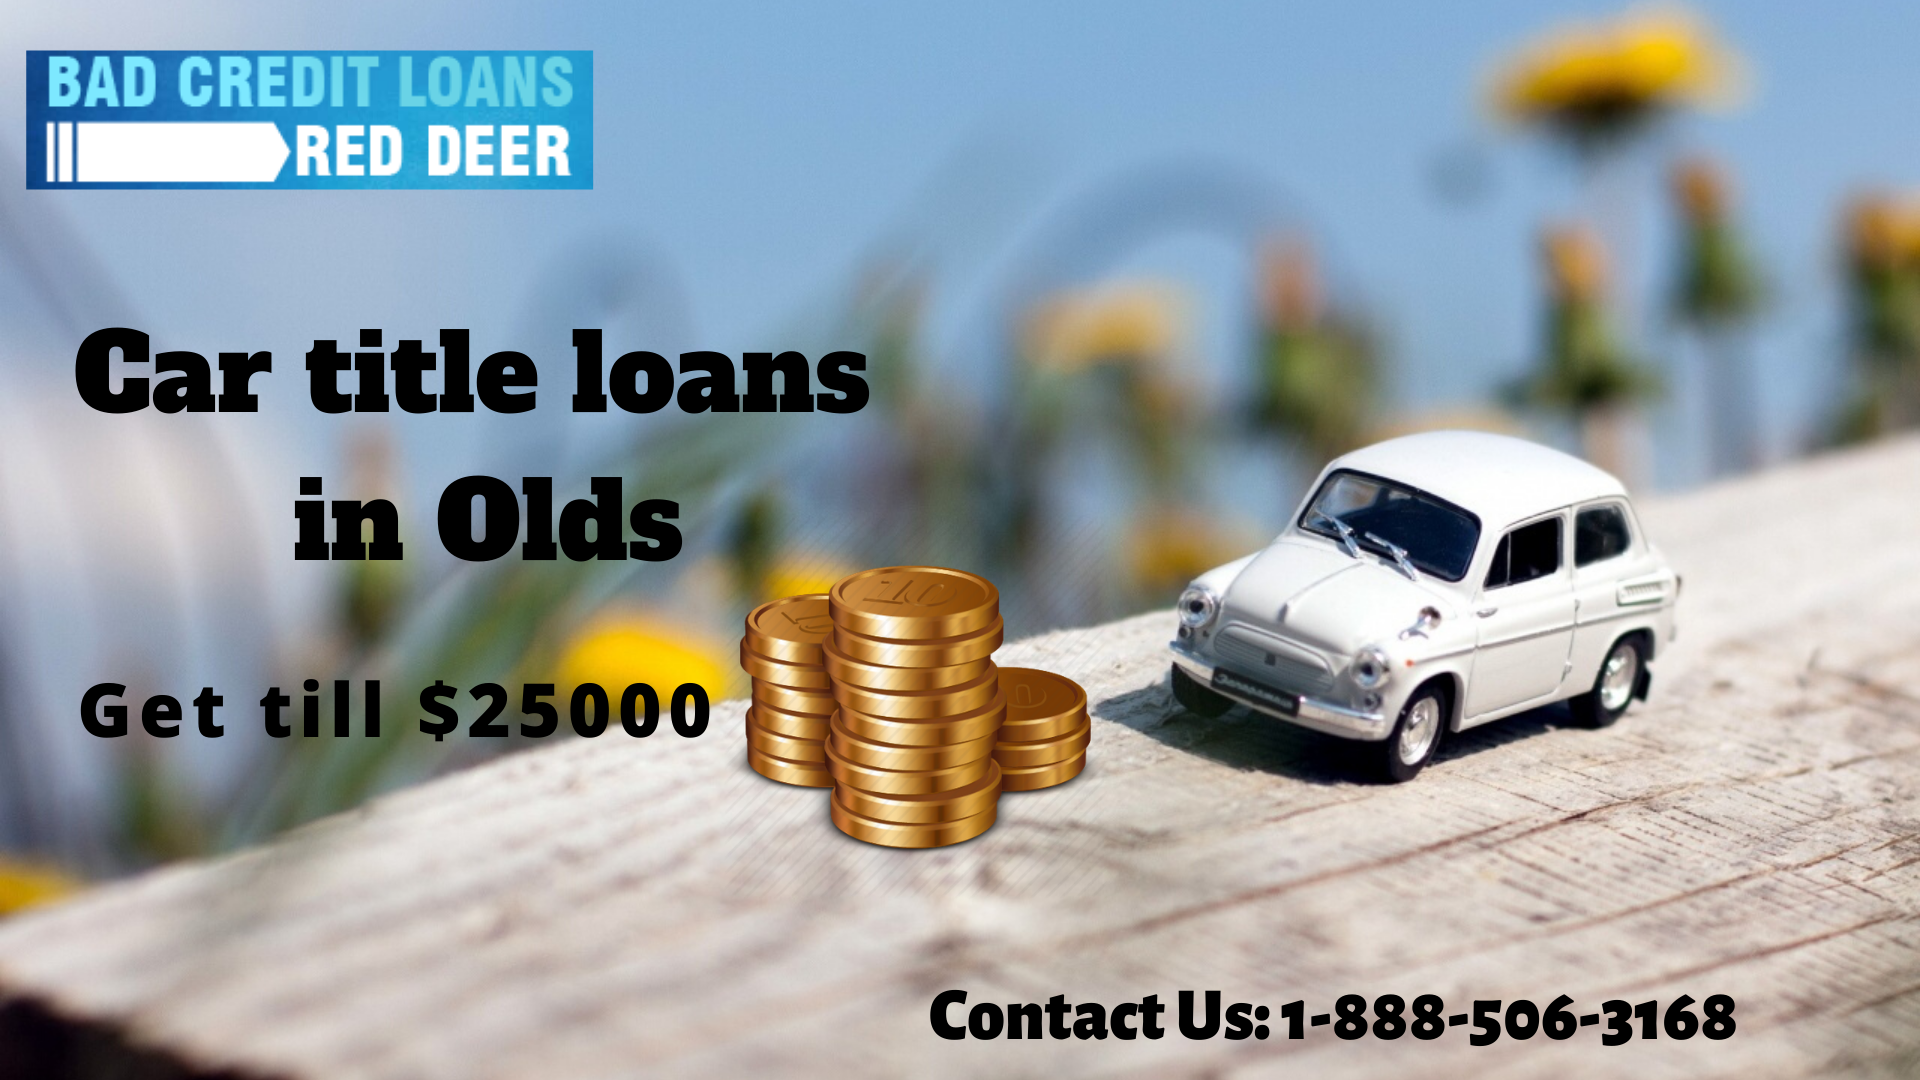 Solve Your Financial Problem By Bad Credit Loans Red Deer In 2020 Loans For Bad Credit Bad Credit Financial Problems